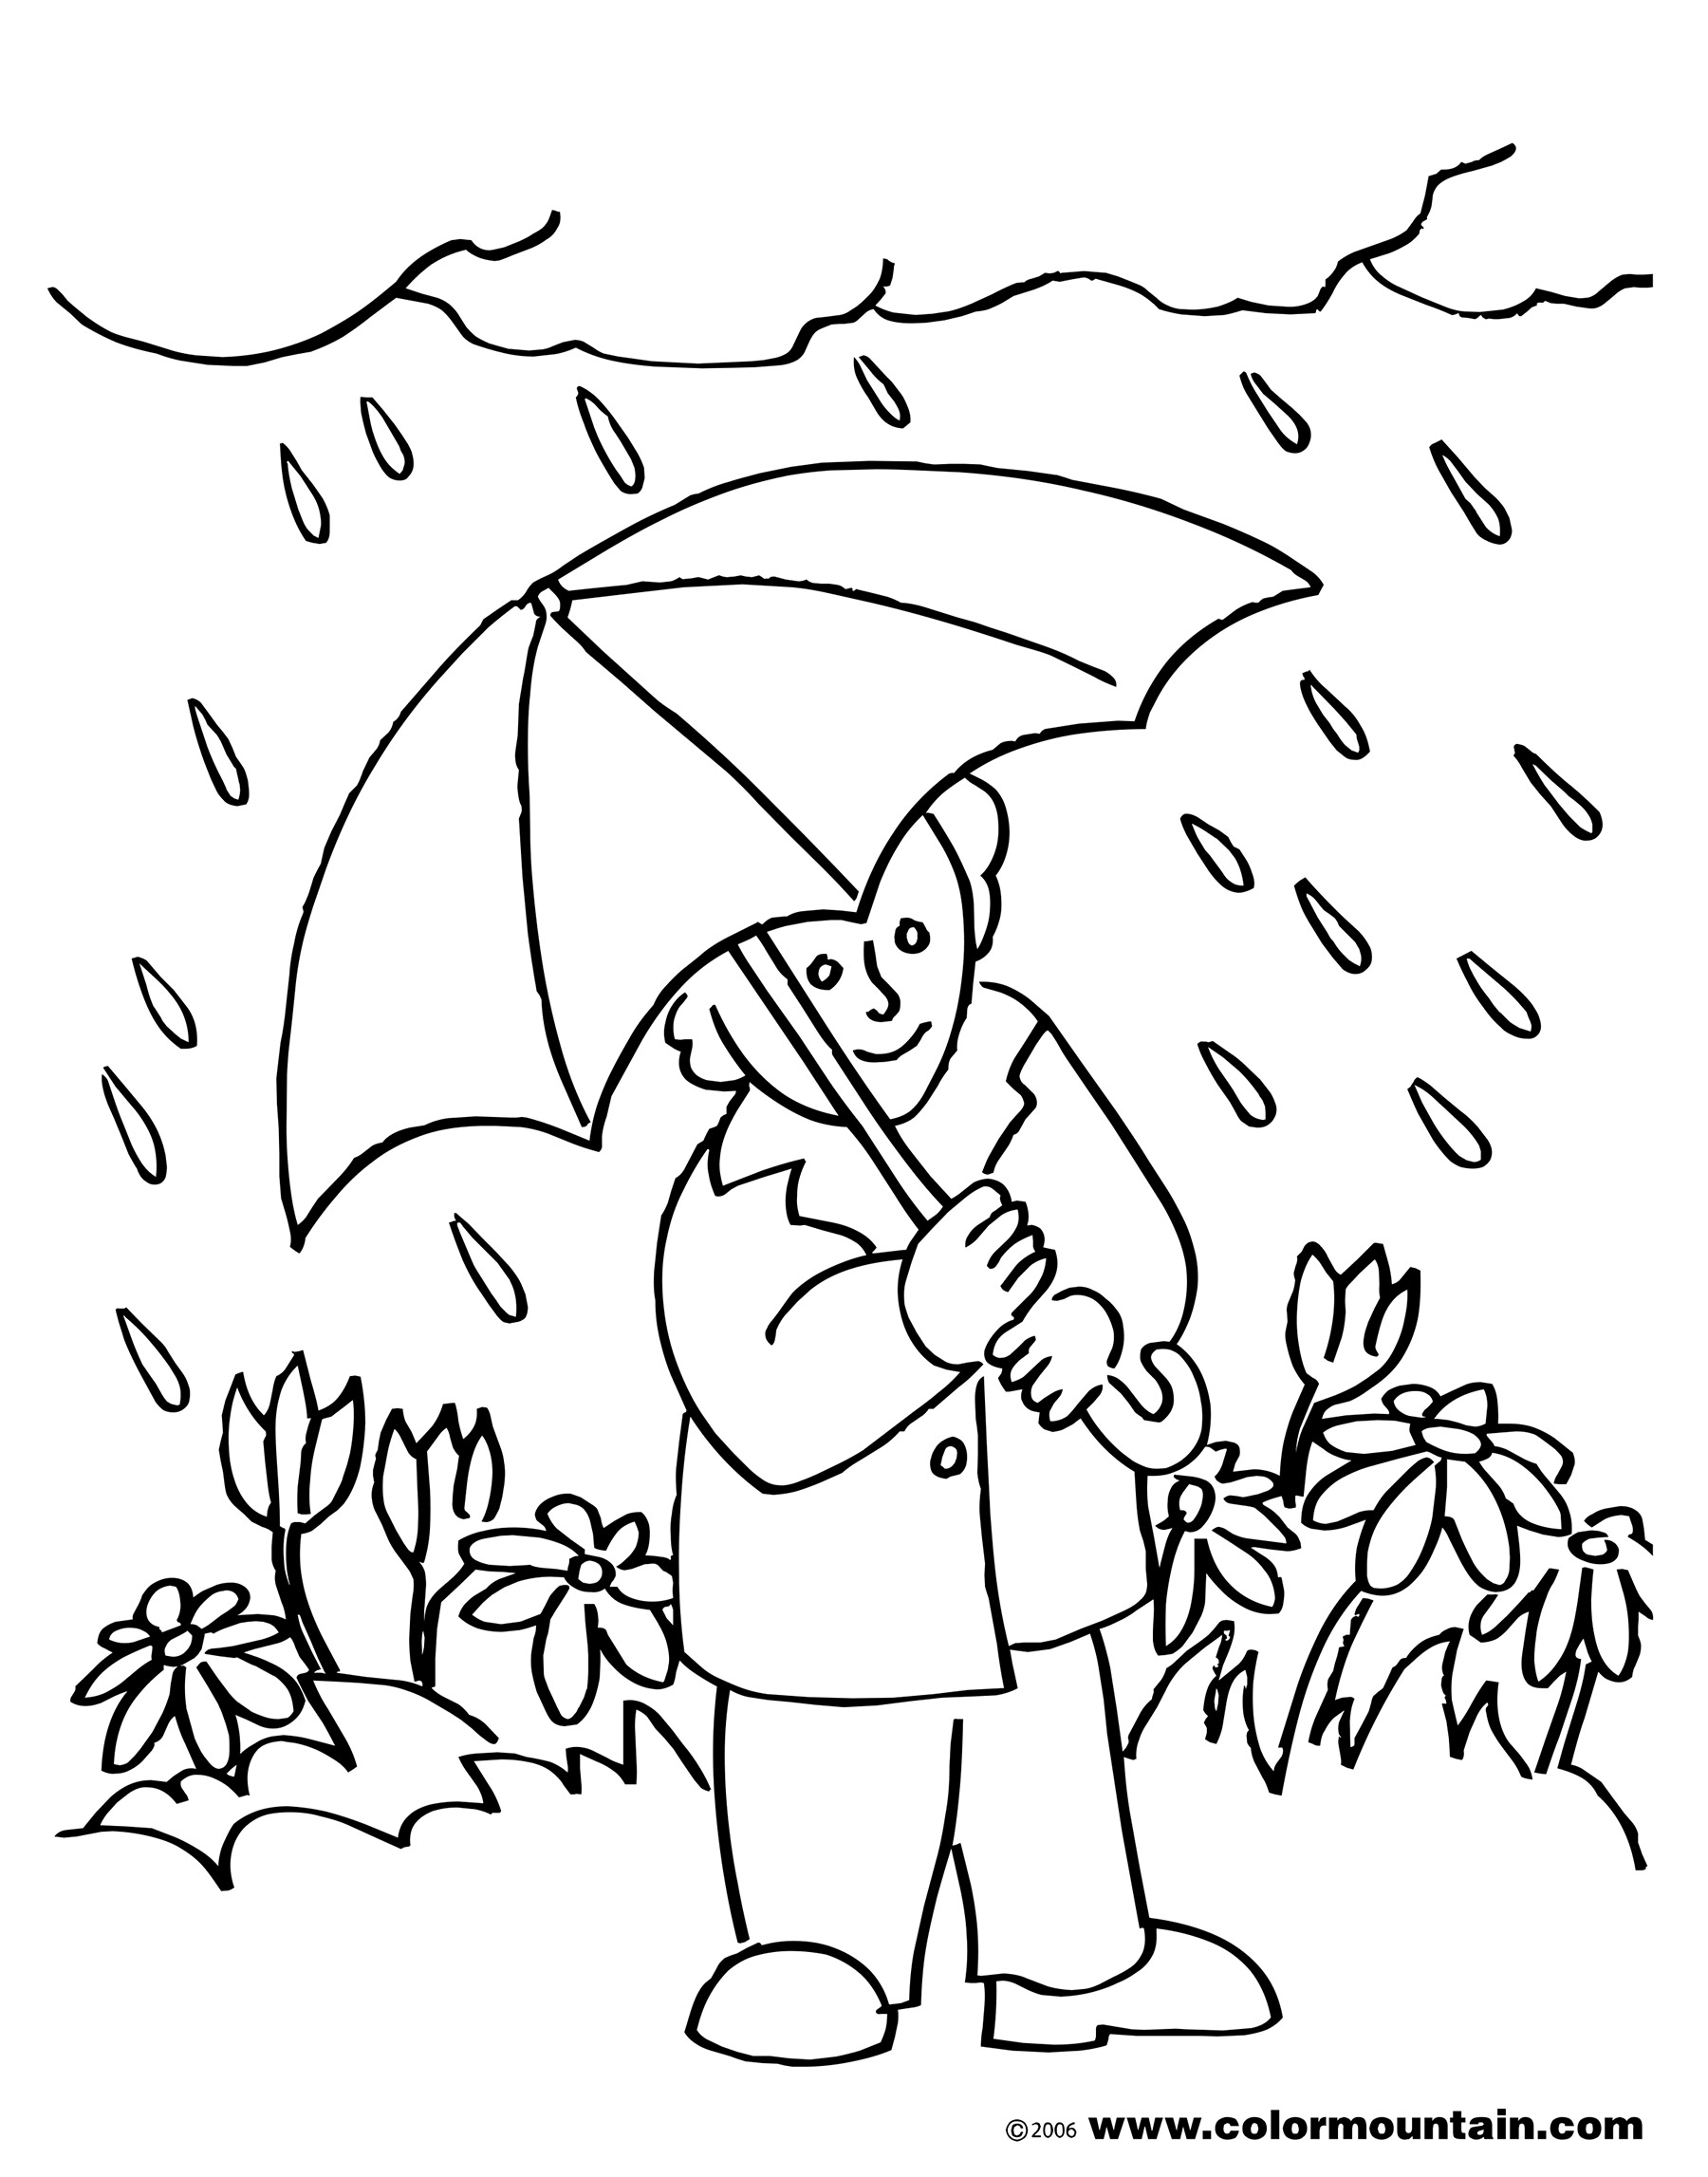 Windy clipart spring day. Black and white clip